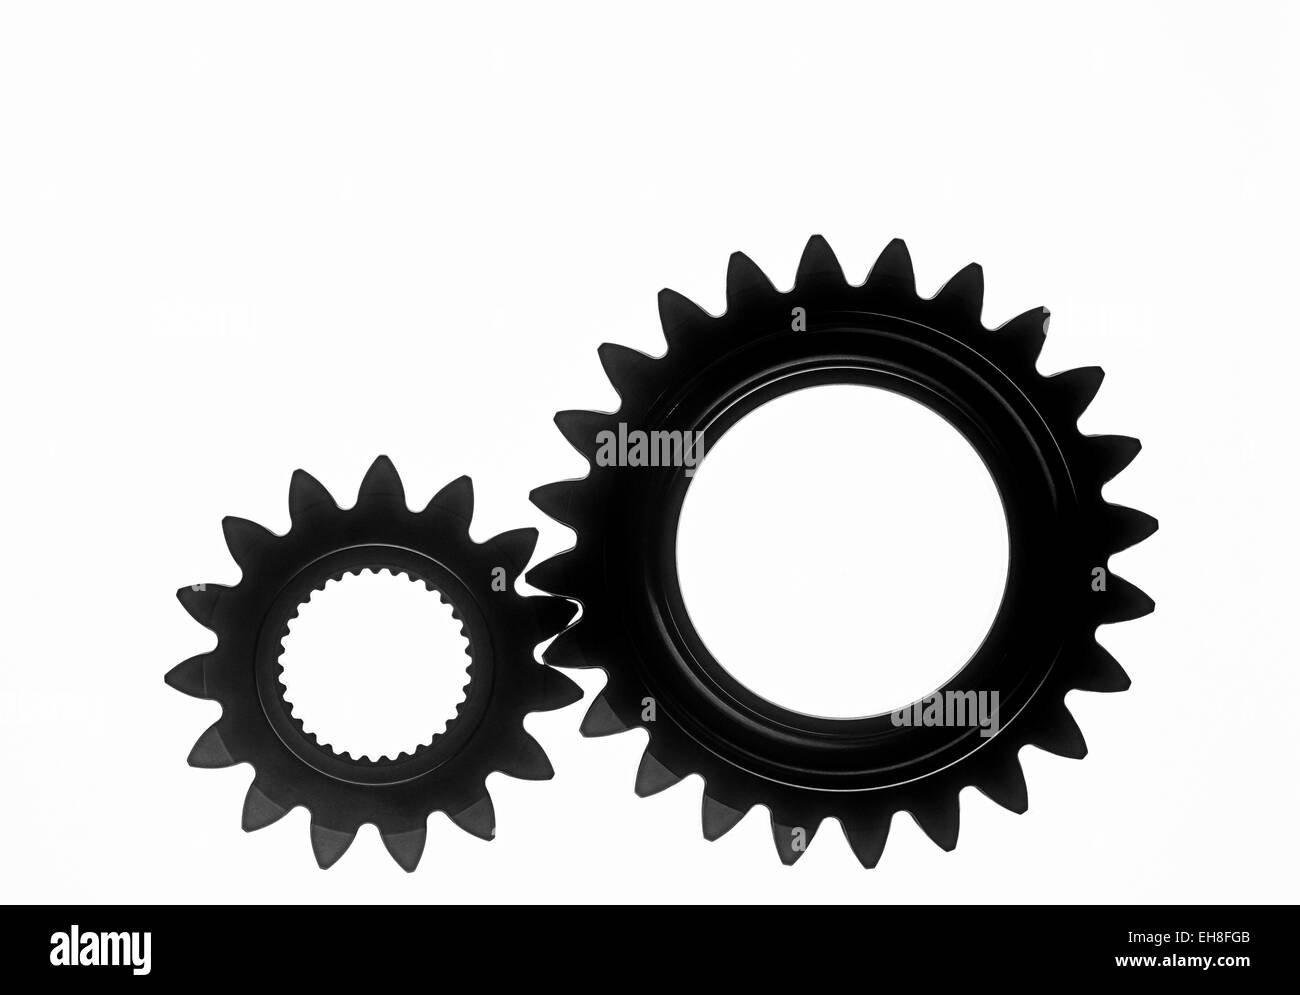 Cogs Gears - Stock Image